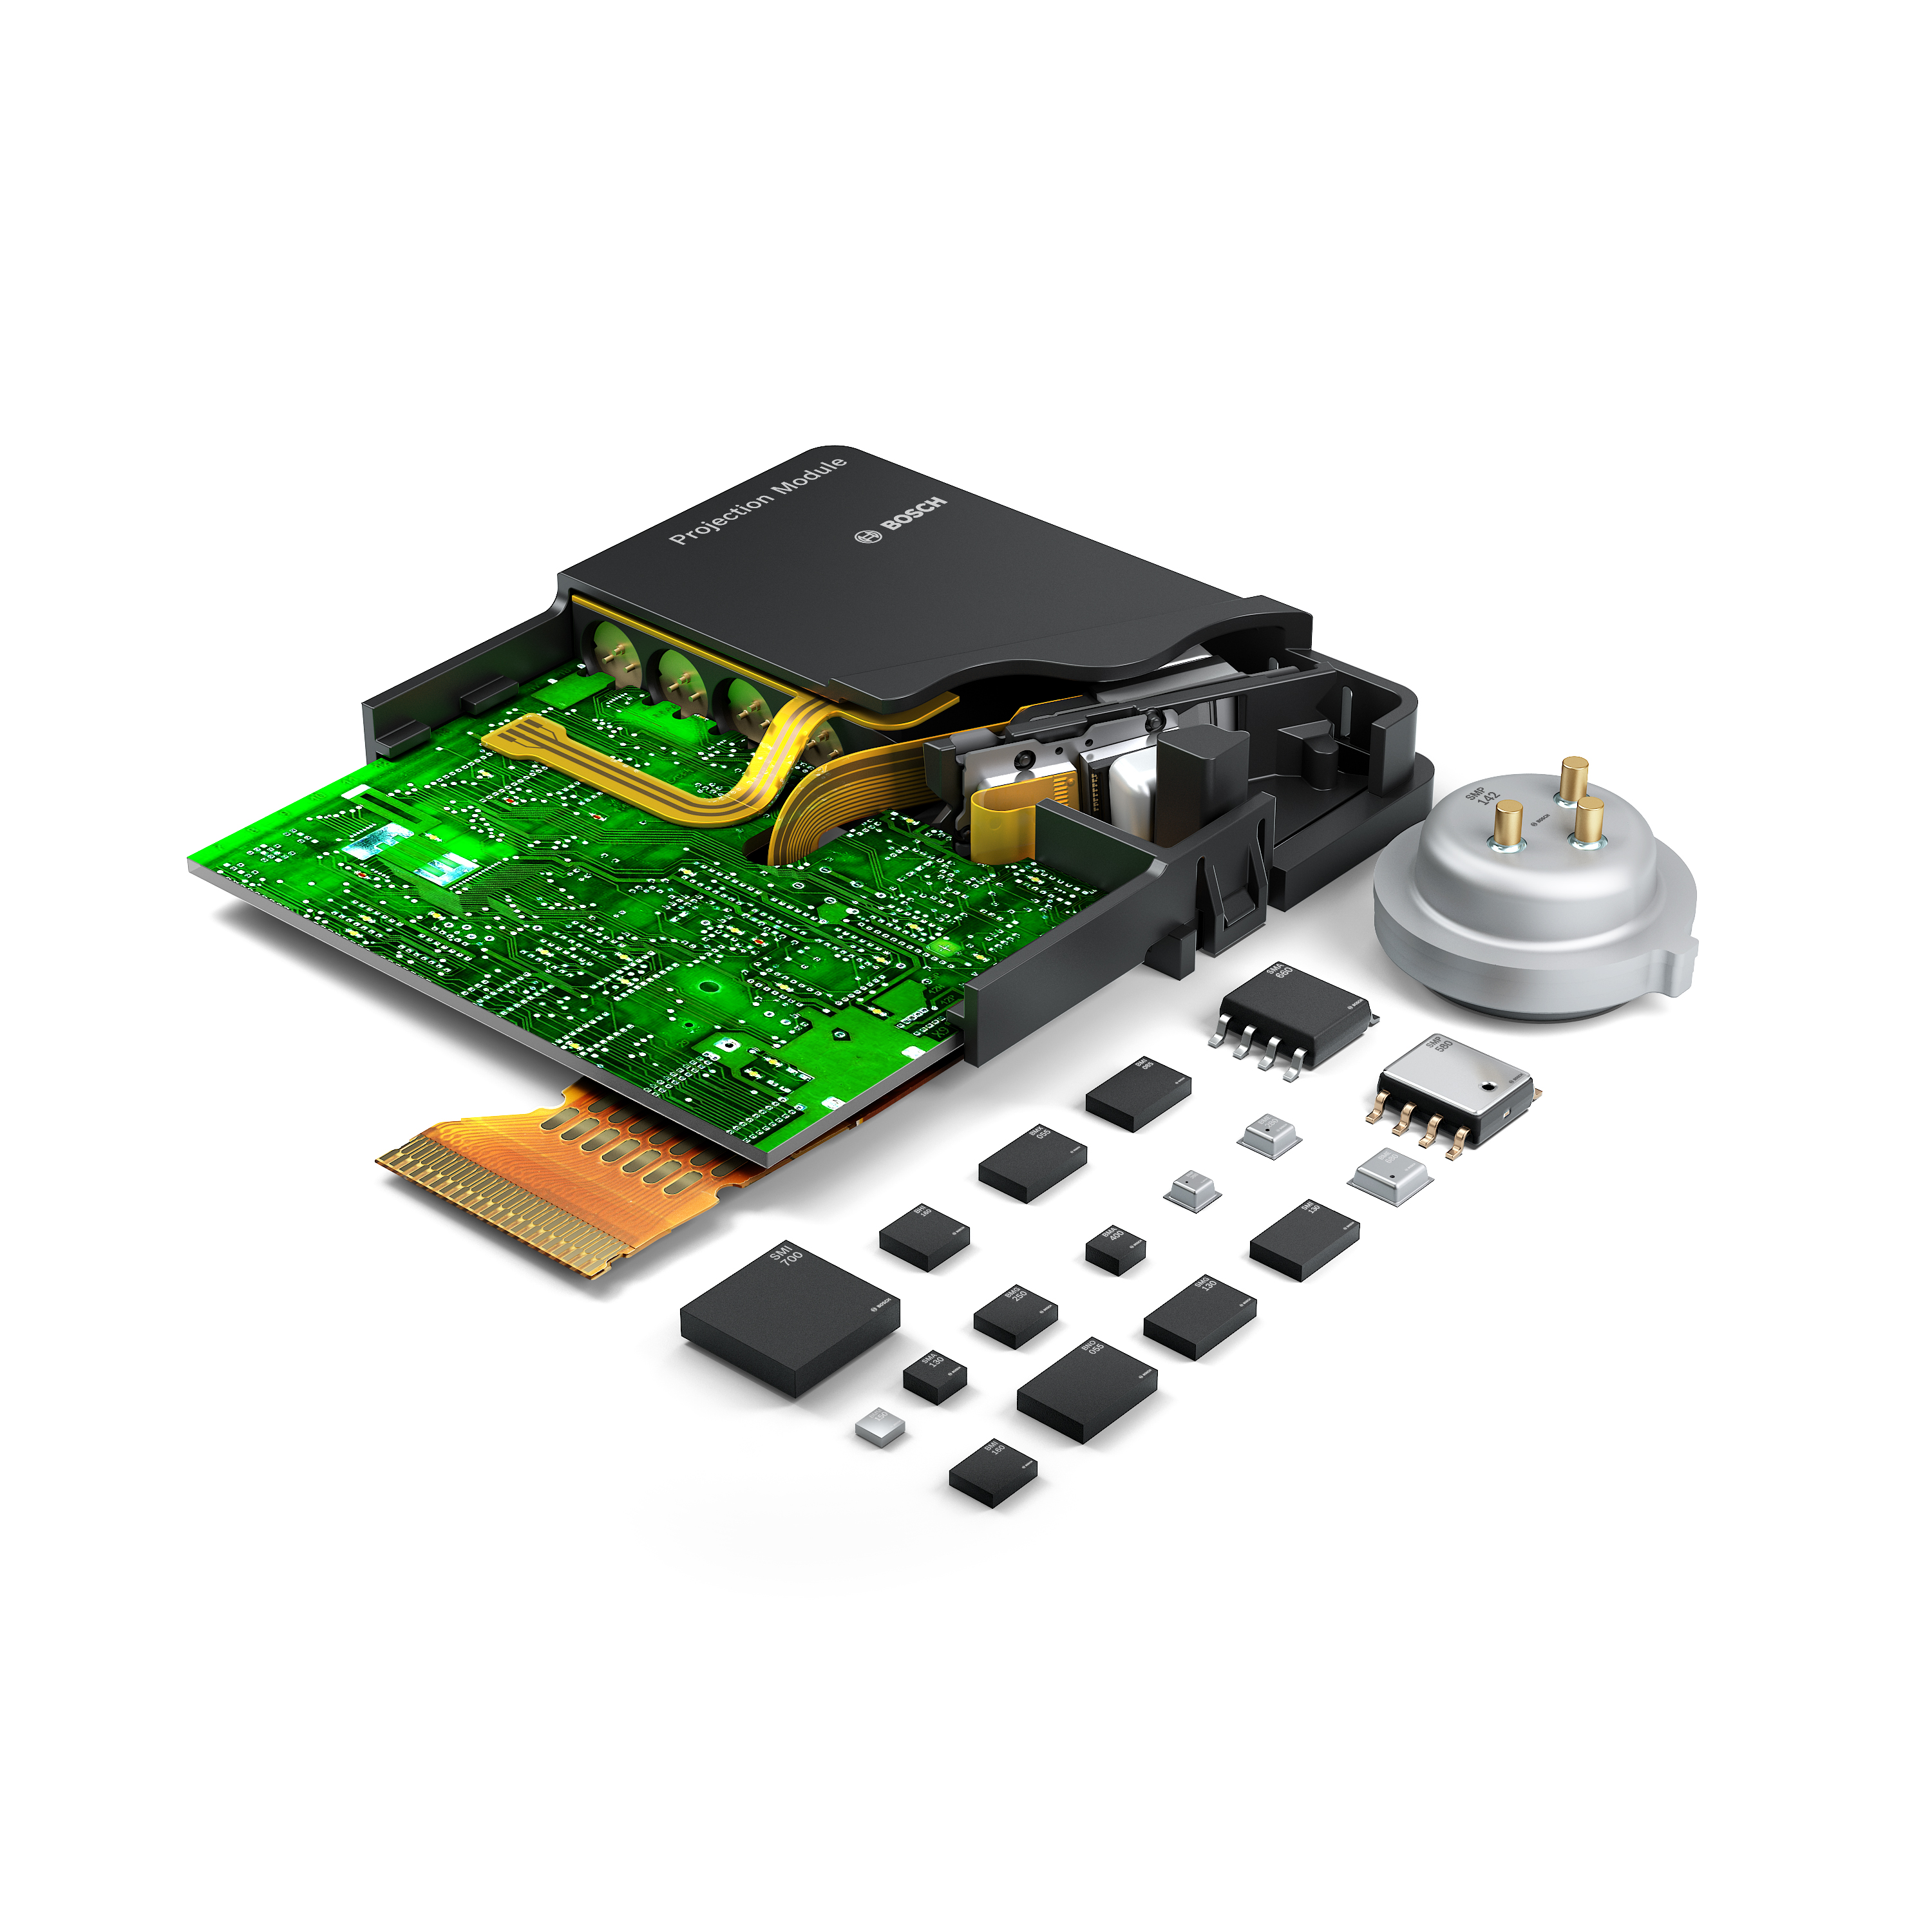 MEMS-Sensors (Micro Electro Mechanical Systems) from Bosch